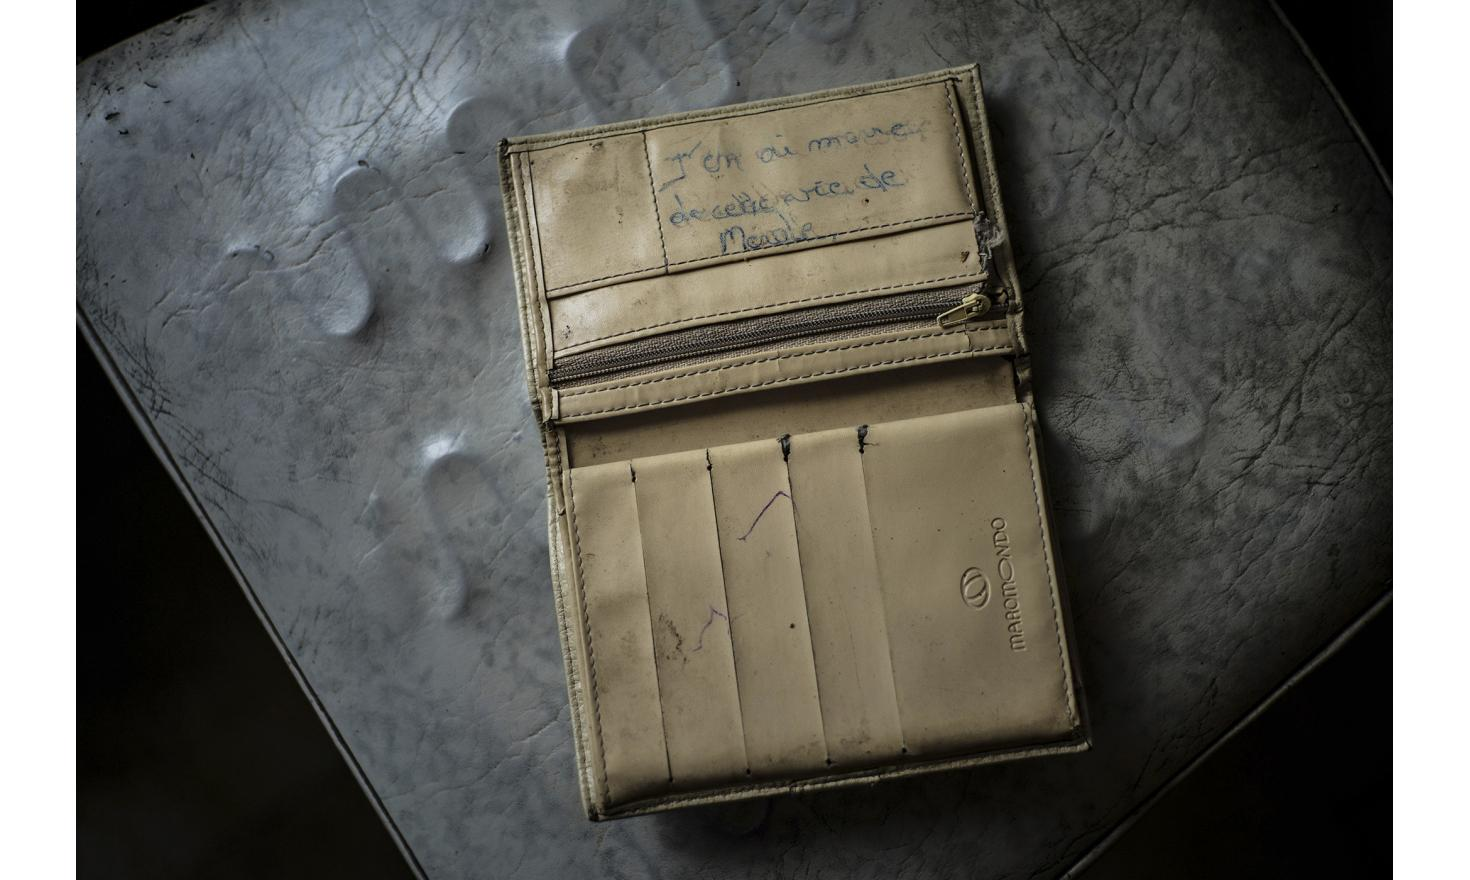 After an afternoon spent at Isabelle's, she throws me her wallet to show me what is written in it. The day after, i learn than her daughter Amandine tried once again to end her life by meds overdose.